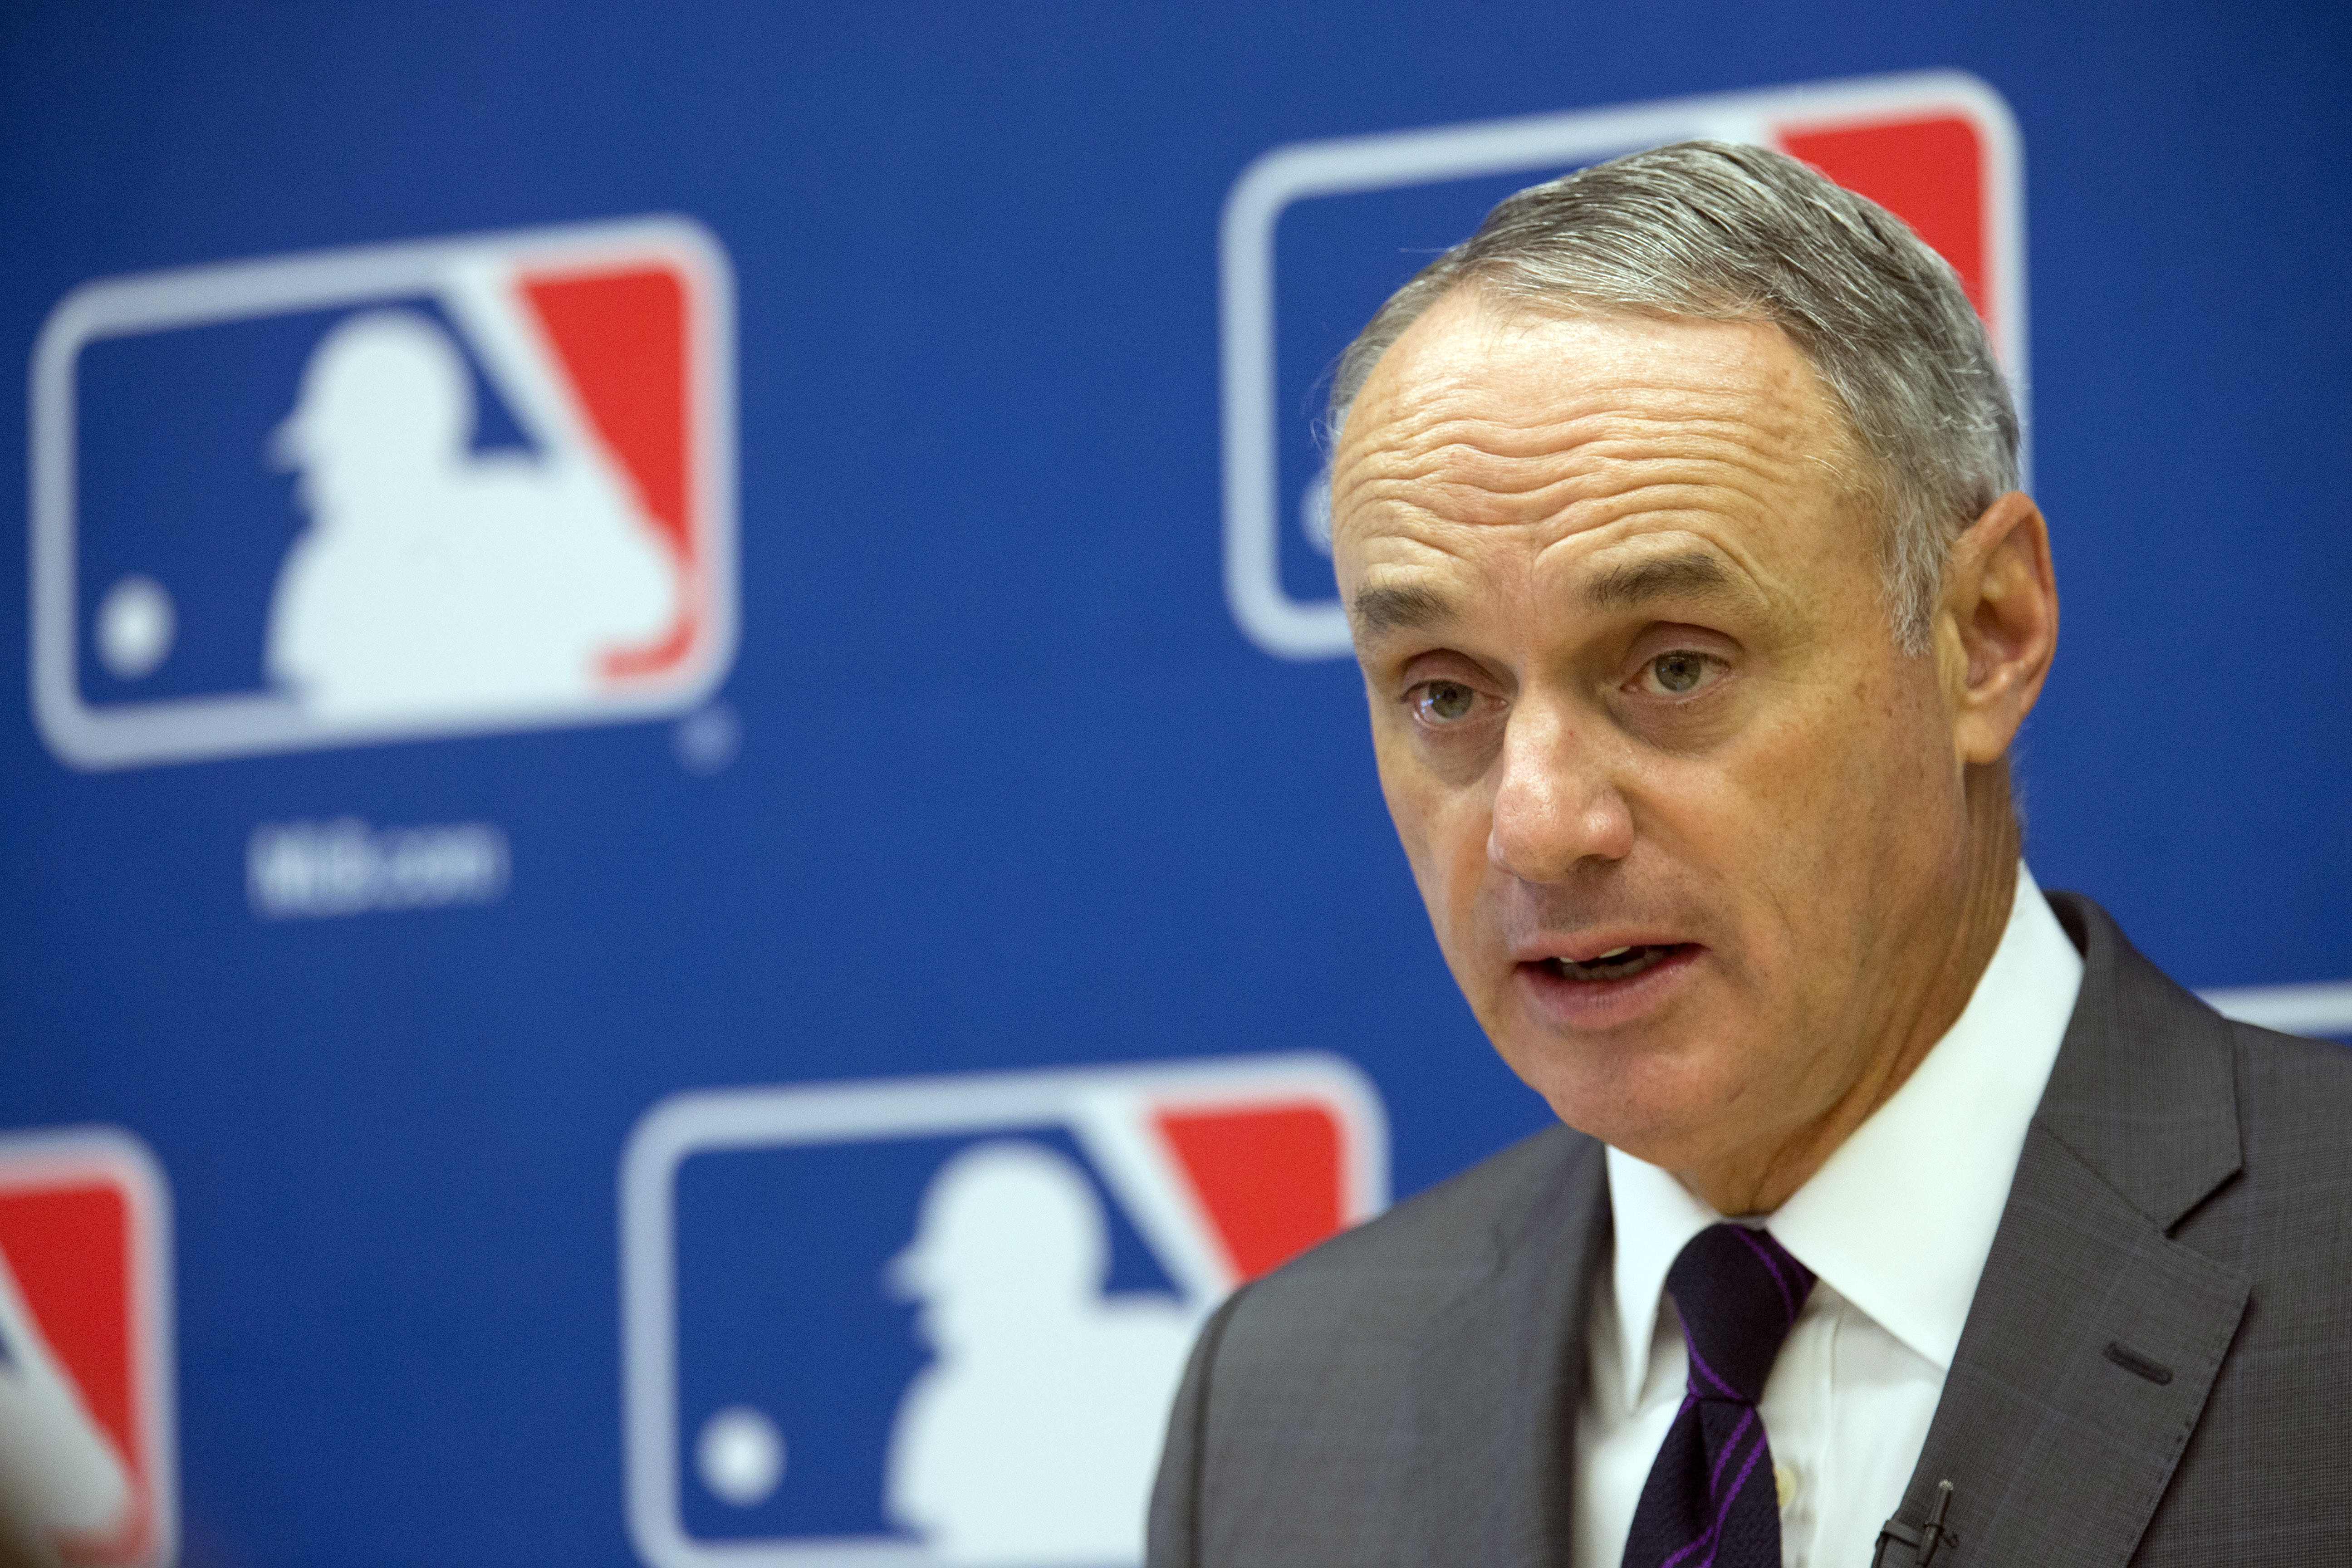 FILE - In this May 19, 2016, file photo, baseball Commissioner Rob Manfred speaks to reporters during a news conference at Major League Baseball headquarters in New York. With home runs up to a level not seen since the height of the Steroids Era, Manfred